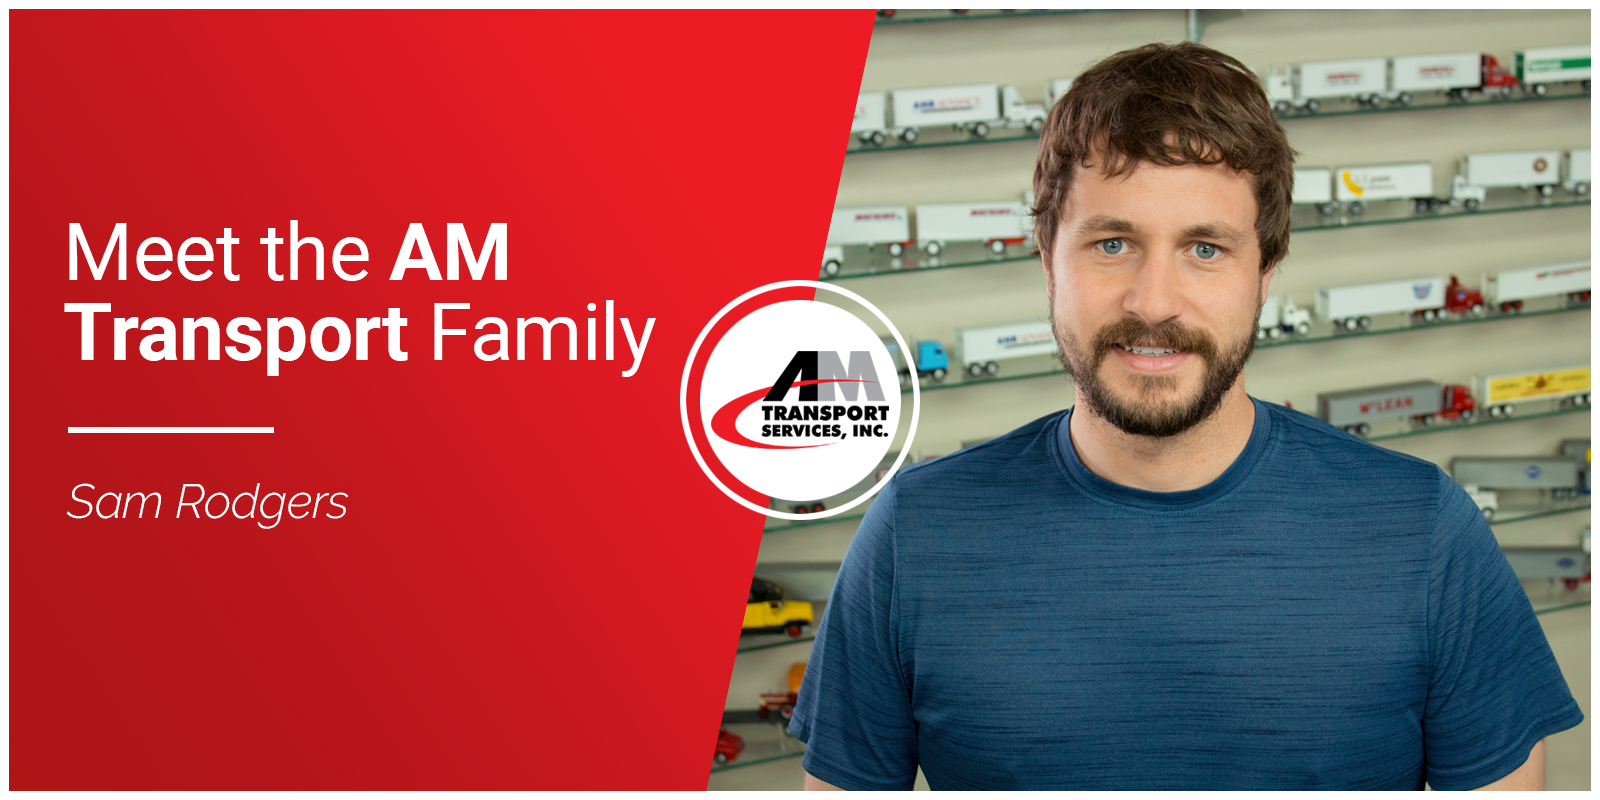 Picture of Sam Rodgers with headline: Meet the AM Transport Family.